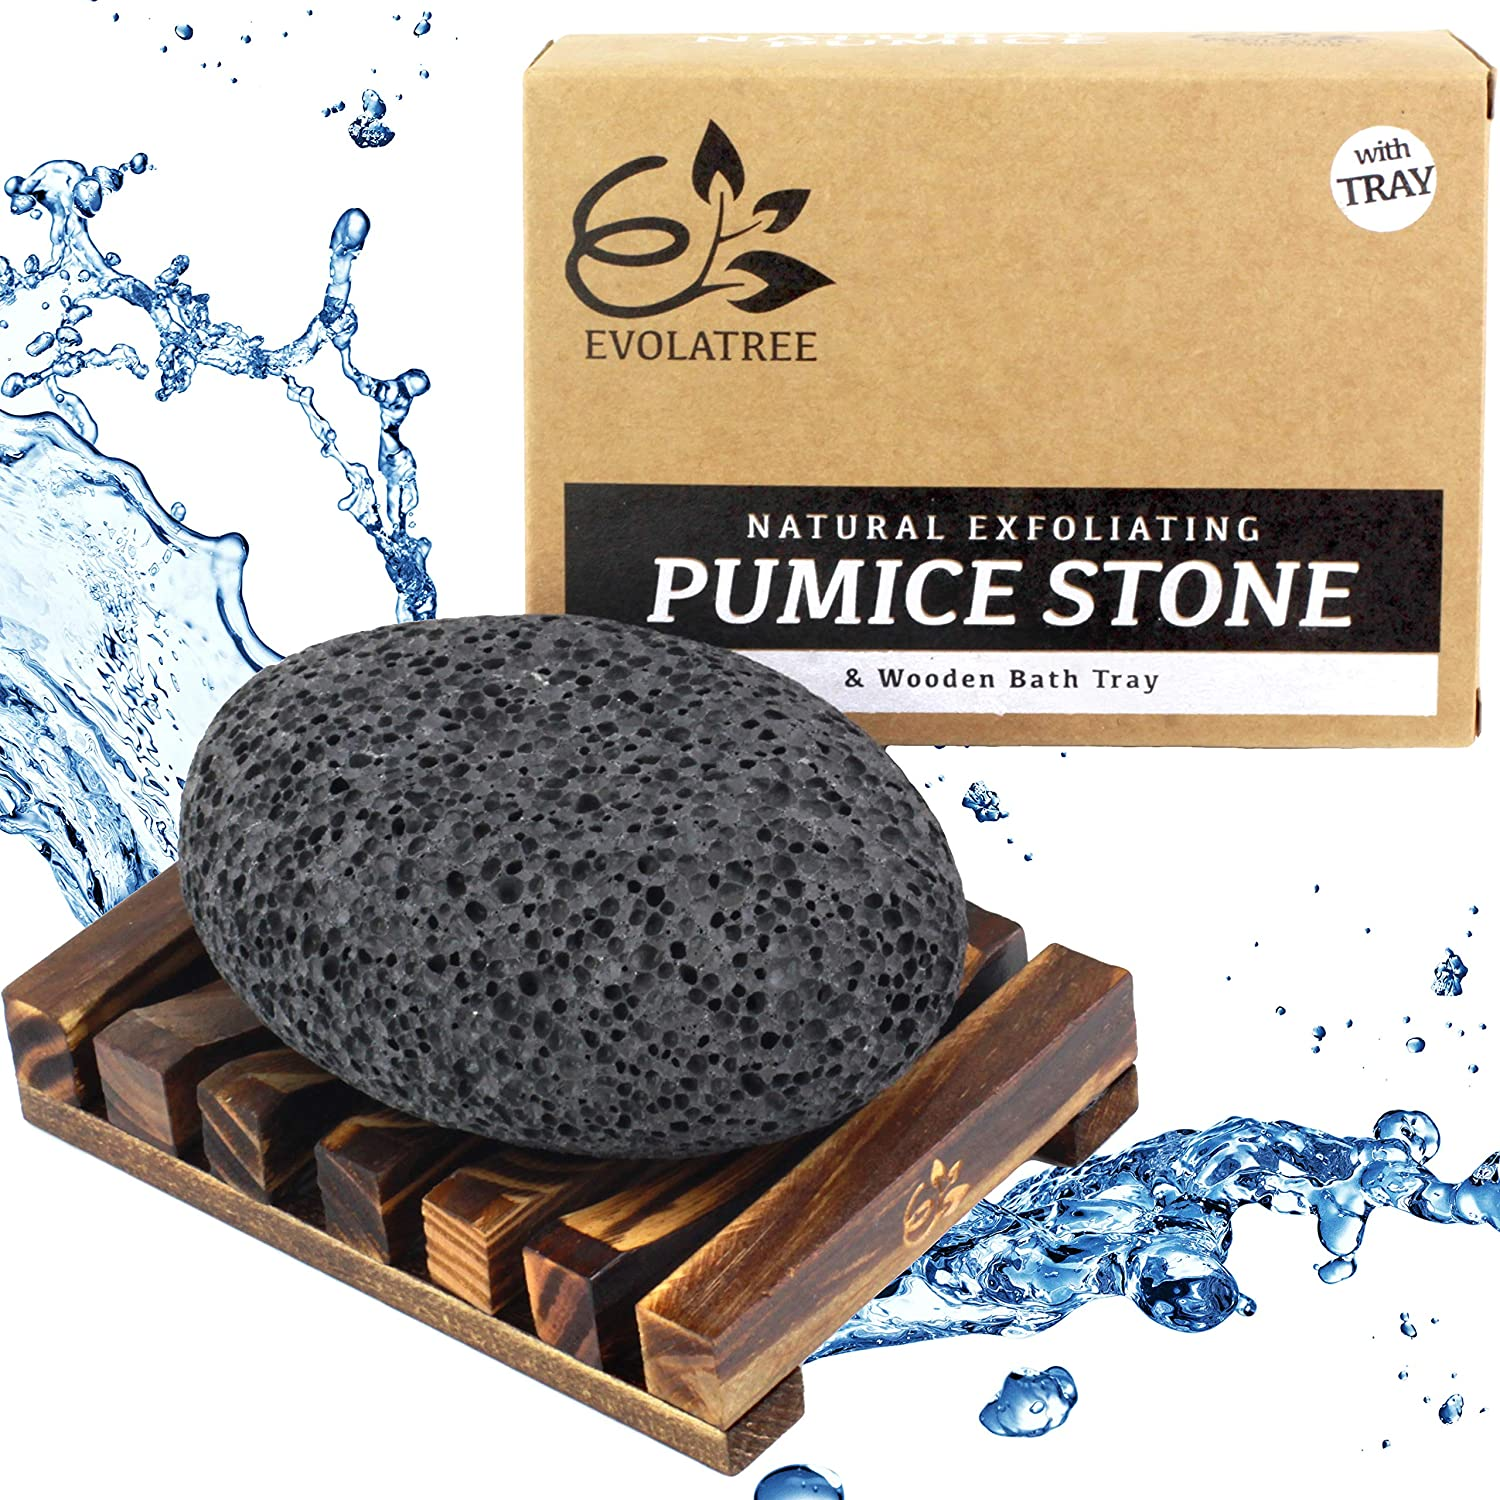 Evolatree Pumice Stone for Feet - Foot Scrubber for Exfoliating Dry Dead Skin - Natural Foot Stone Removes Callus on Hands, Heels, and Body - Pedicure Foot Care Gift Set w/Reusable Wooden Bath Tray